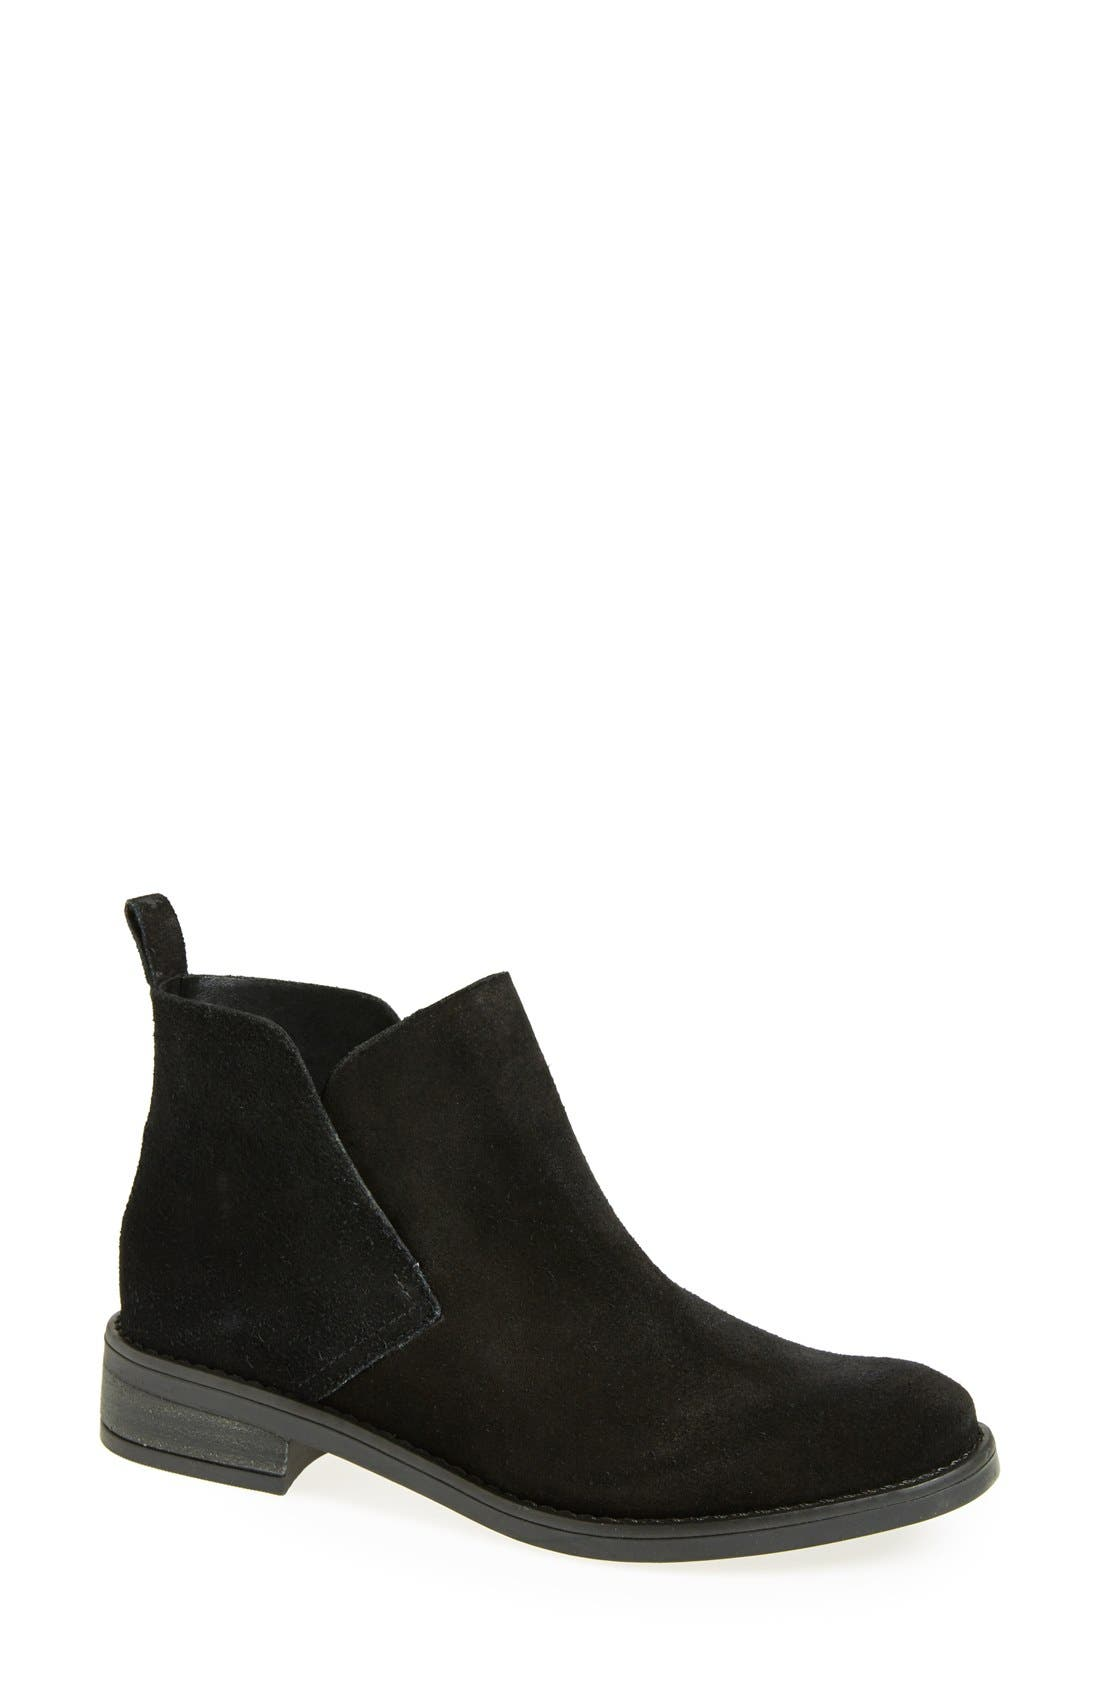 Alternate Image 1 Selected - Lucky Brand 'Nightt' Bootie (Women)